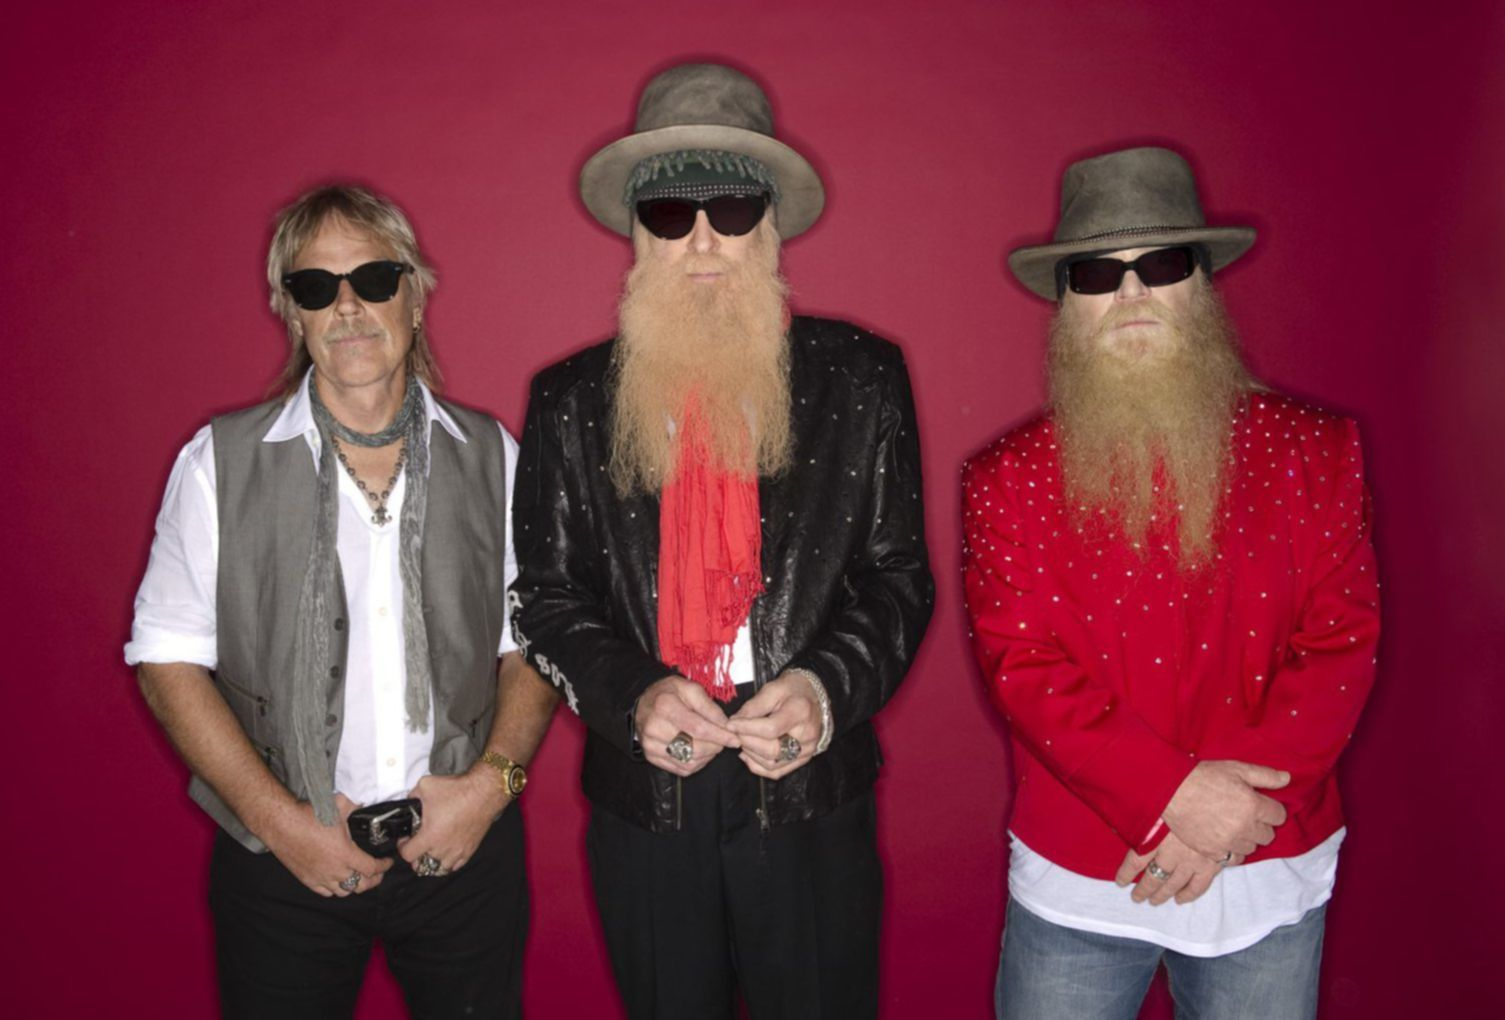 zz top legend res trio kommt 2017 nach deutschland. Black Bedroom Furniture Sets. Home Design Ideas